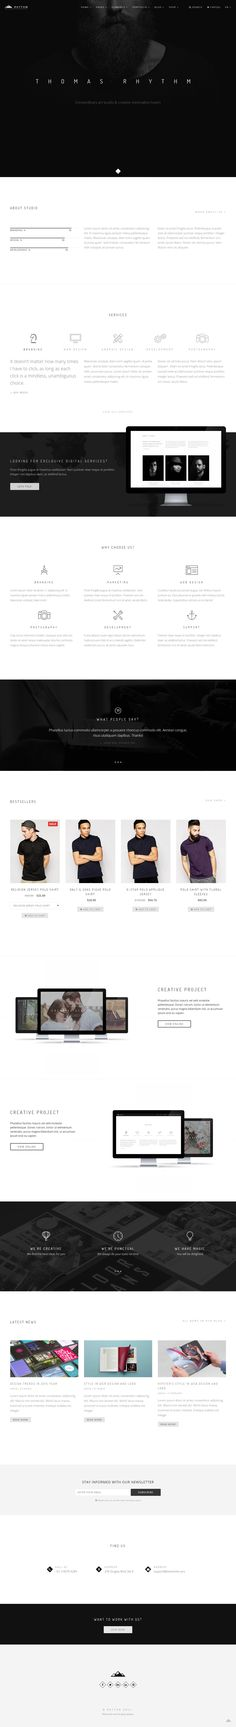 Rhythm is Premium full Responsive Retina Parallax Drupal Multipurpose Theme. One Page. Bootstrap 3. Isotope. Drupal Commerce. Test free demo at: http://www.responsivemiracle.com/cms/rhythm-premium-responsive-multipurpose-commerce-drupal-theme/